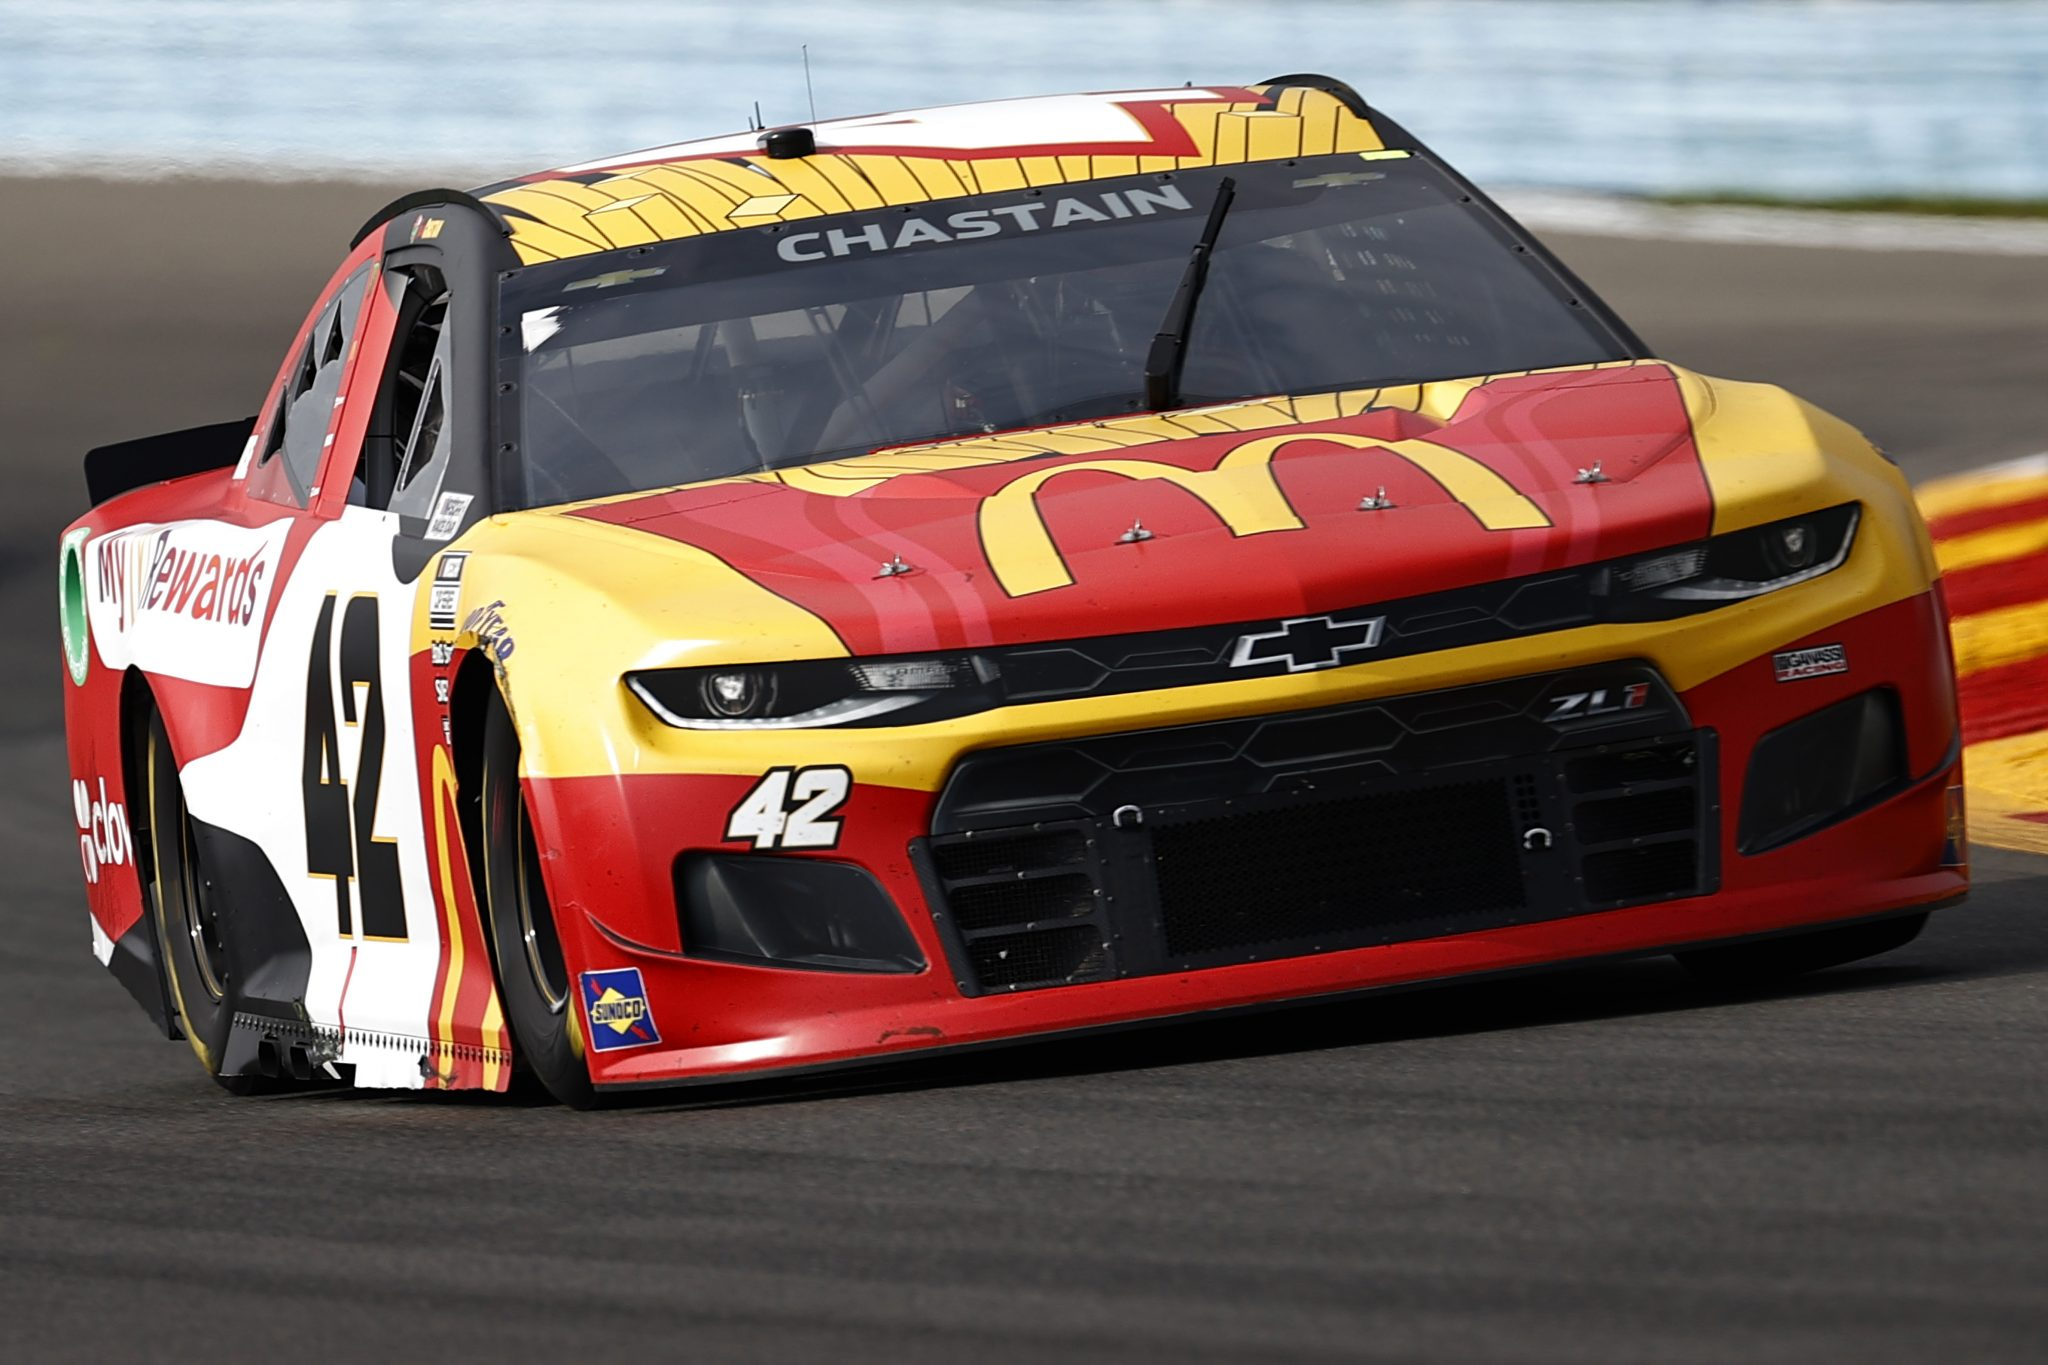 WATKINS GLEN, NEW YORK - AUGUST 08: Ross Chastain, driver of the #42 MyMcDonald's Rewards Chevrolet, drives during the NASCAR Cup Series Go Bowling at The Glen at Watkins Glen International on August 08, 2021 in Watkins Glen, New York. (Photo by Jared C. Tilton/Getty Images) | Getty Images